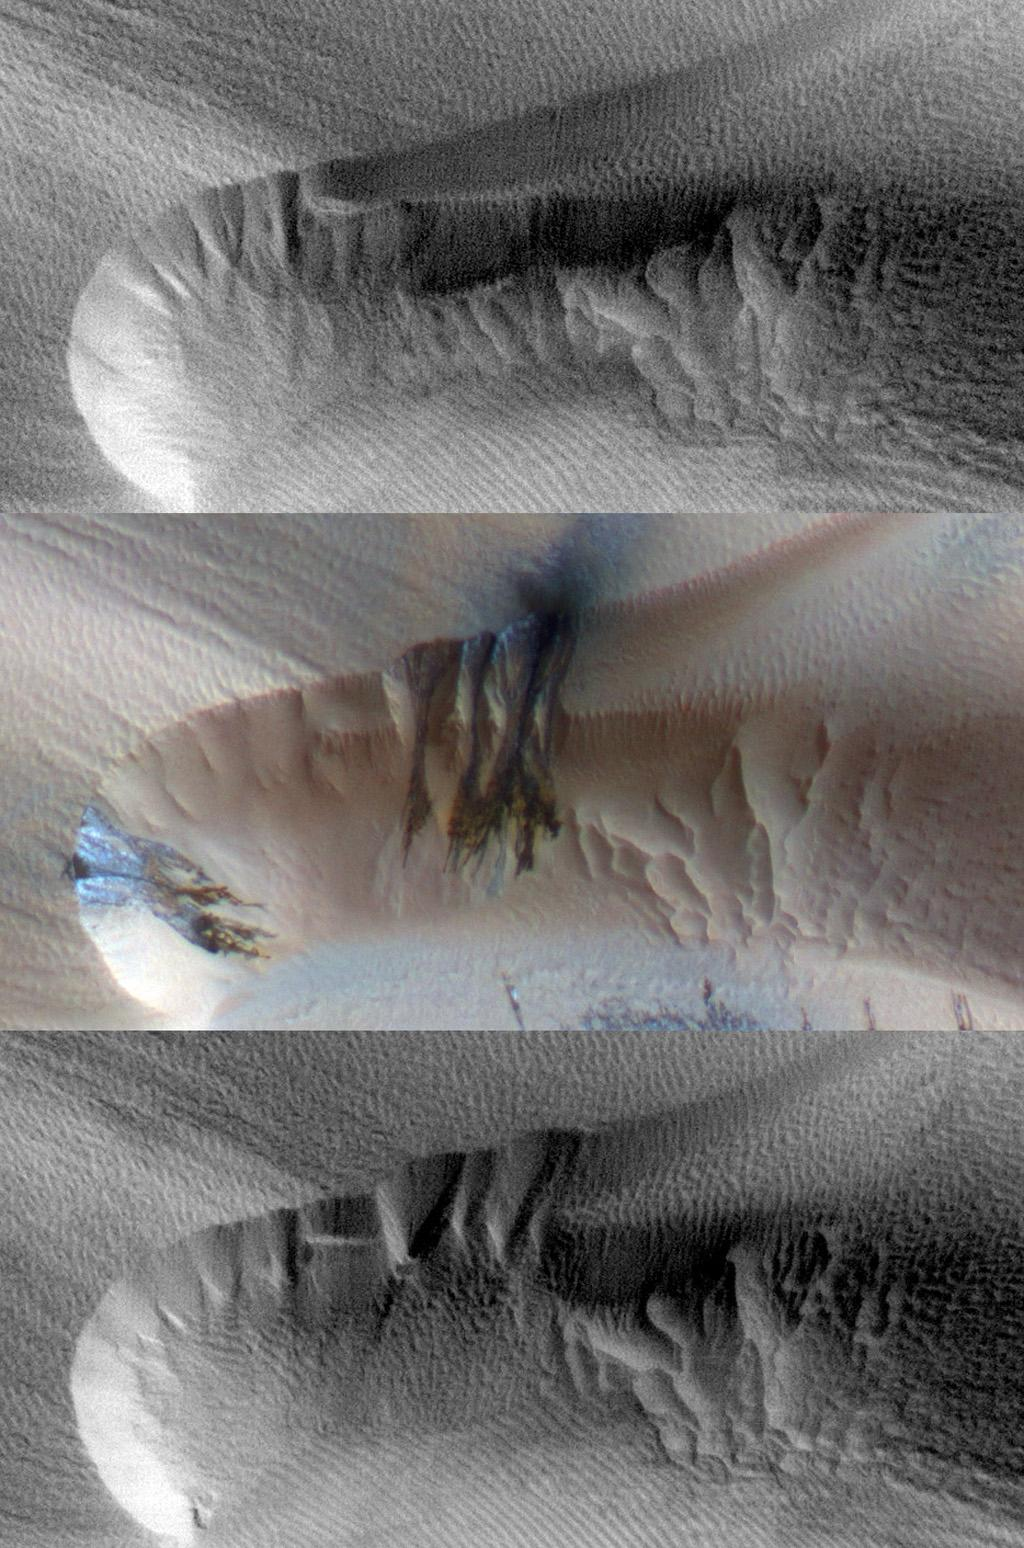 Three images of the same location, taken by NASA's Mars Reconnaissance Orbiter at different times on Mars, show seasonal activity causing sand avalanches and ripple changes on a Martian dune. Time sequence of the images progresses from top to bottom.